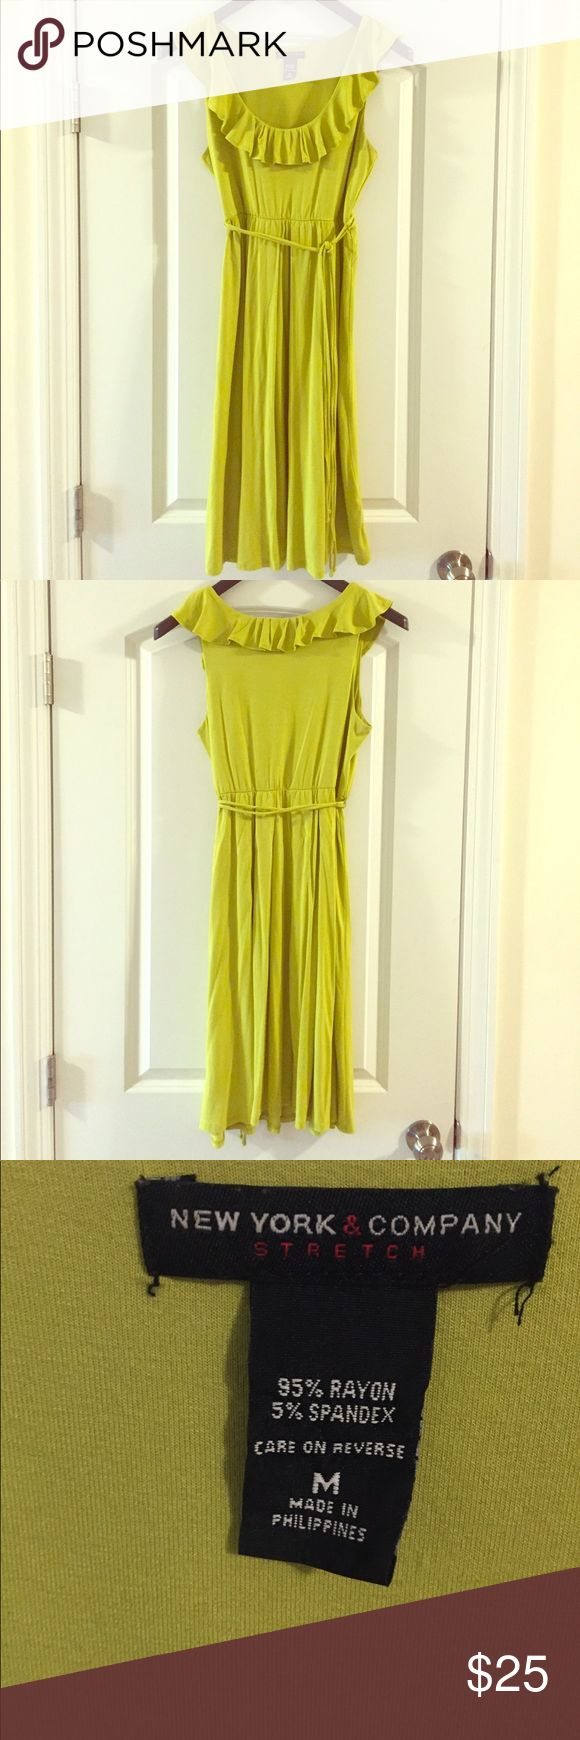 New York & Company dress with waist tie Yellow/green NY&Co dress with waist tie. Scoop neck front. Perfect for a summer night out. Size medium. EUC New York & Company Dresses